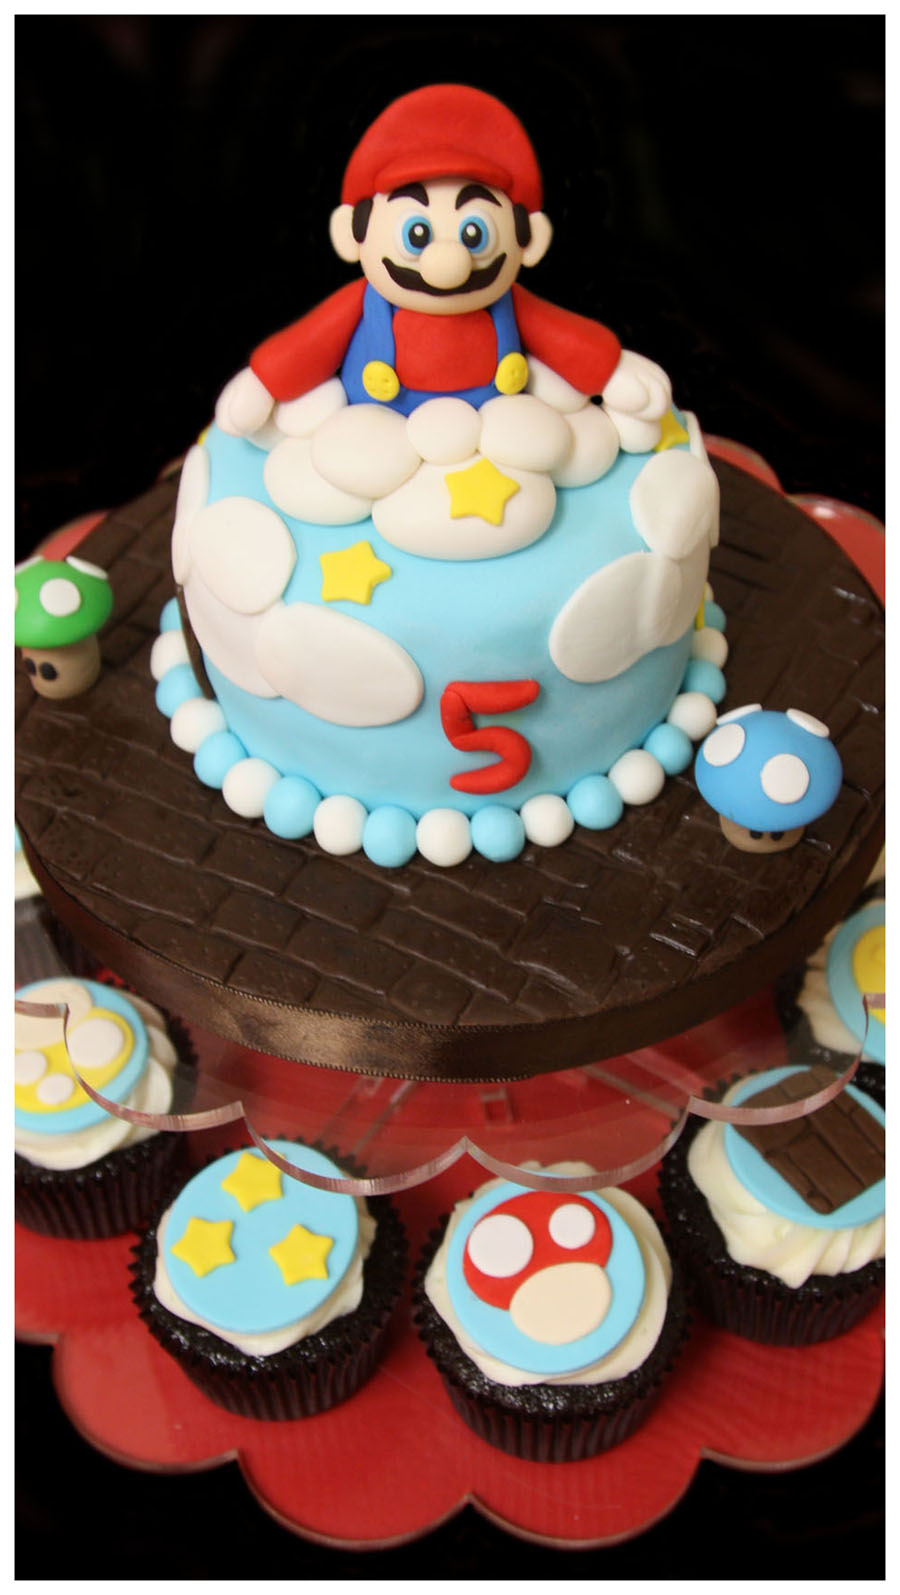 Mario Theme Birthday Cake & Custom Decorated Cupcakes